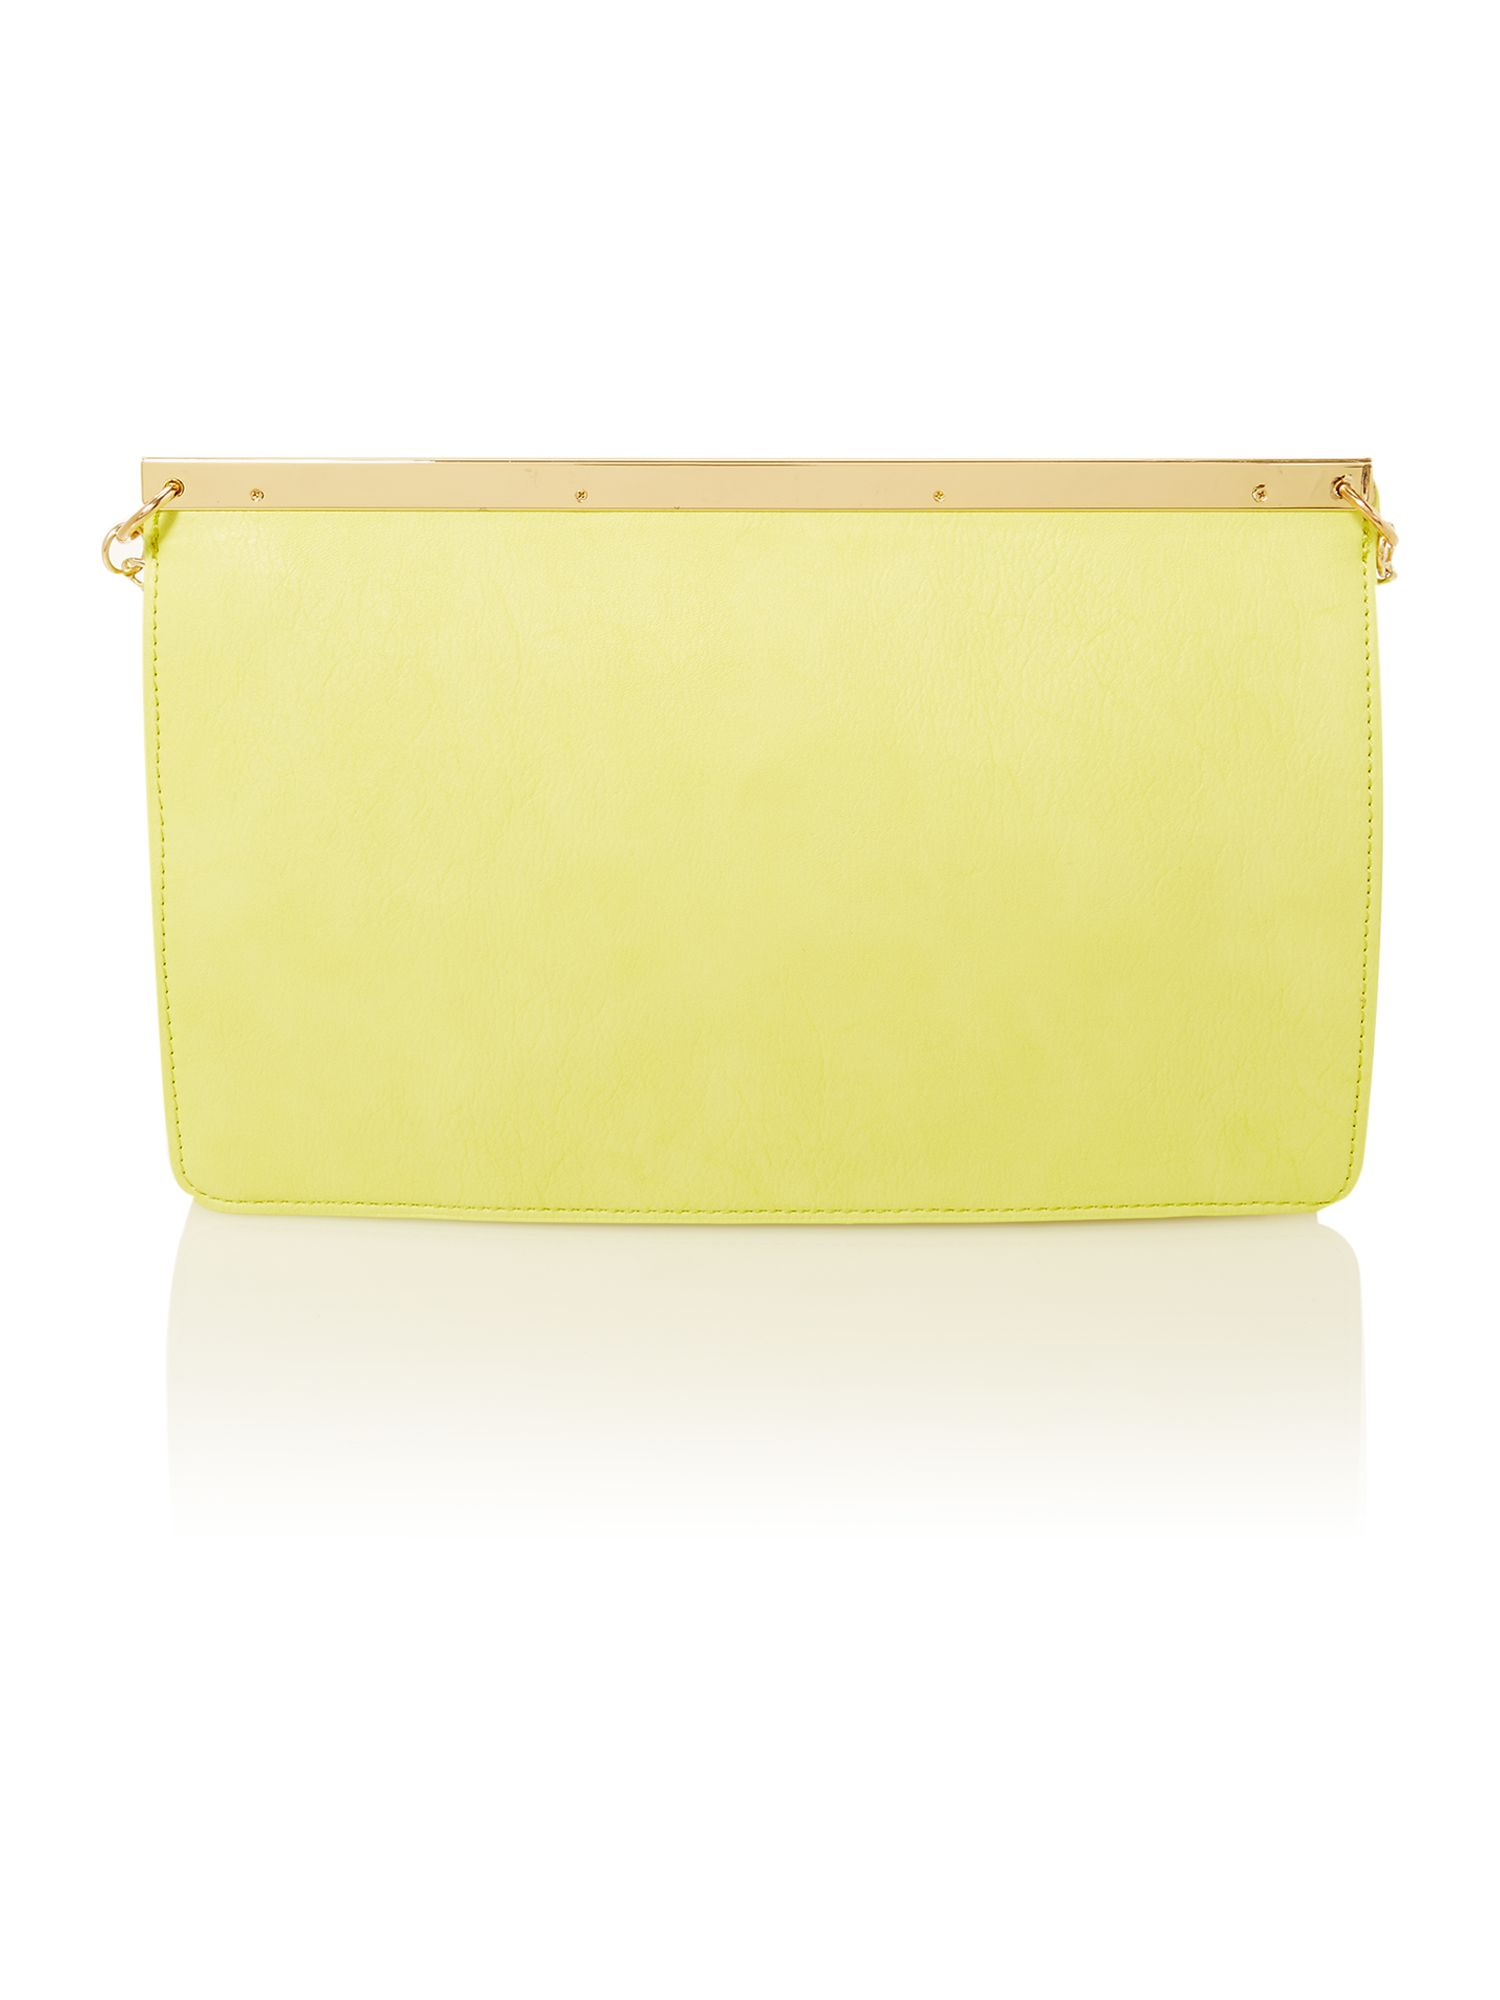 Green small clutch bag